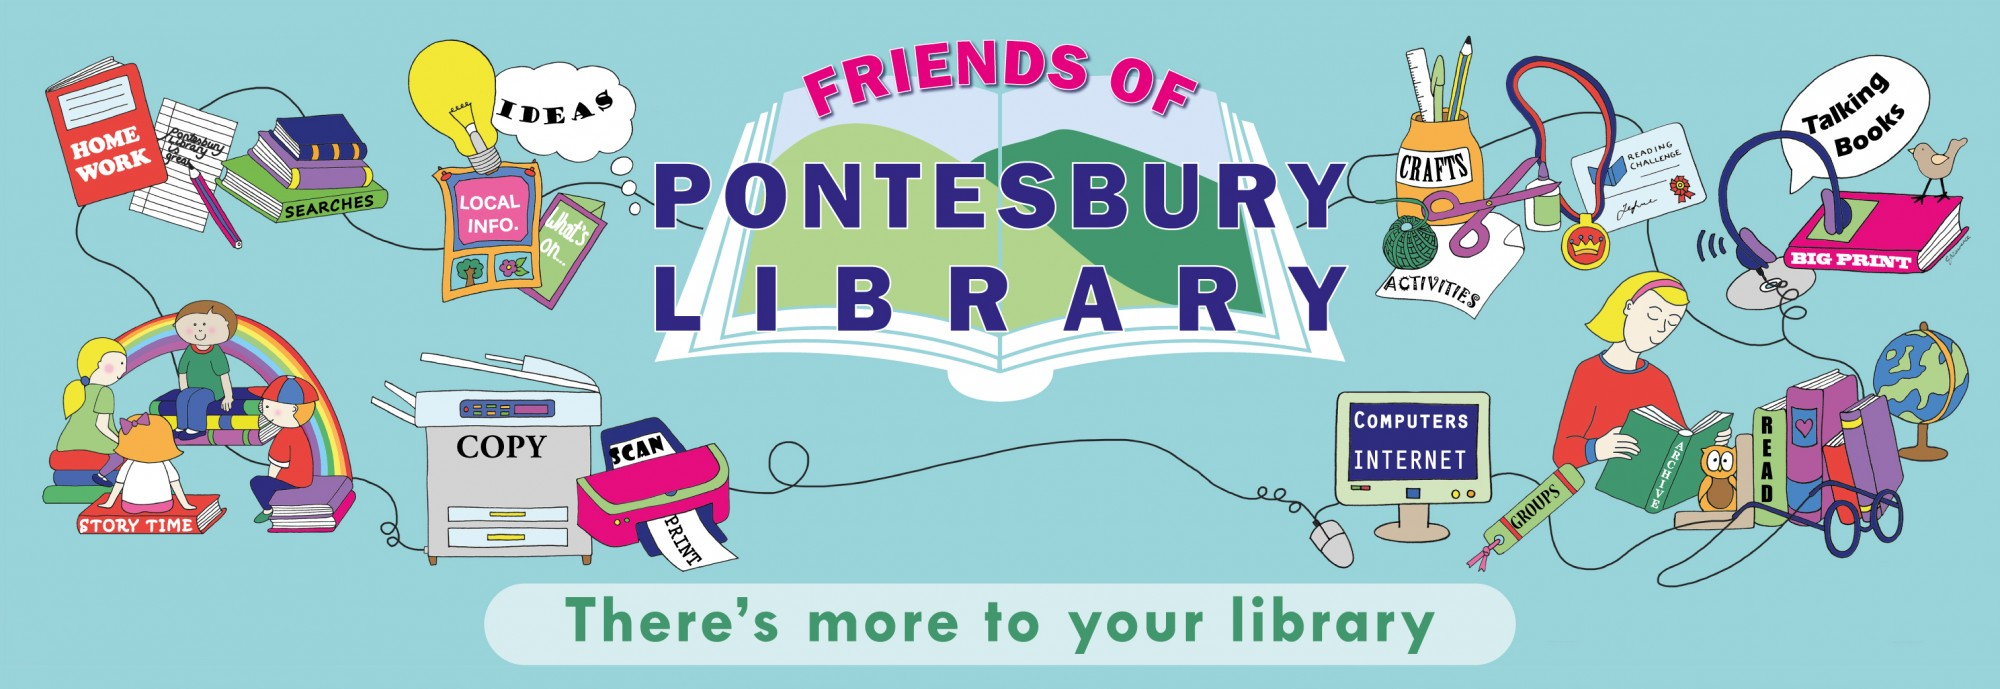 Pontesbury Library